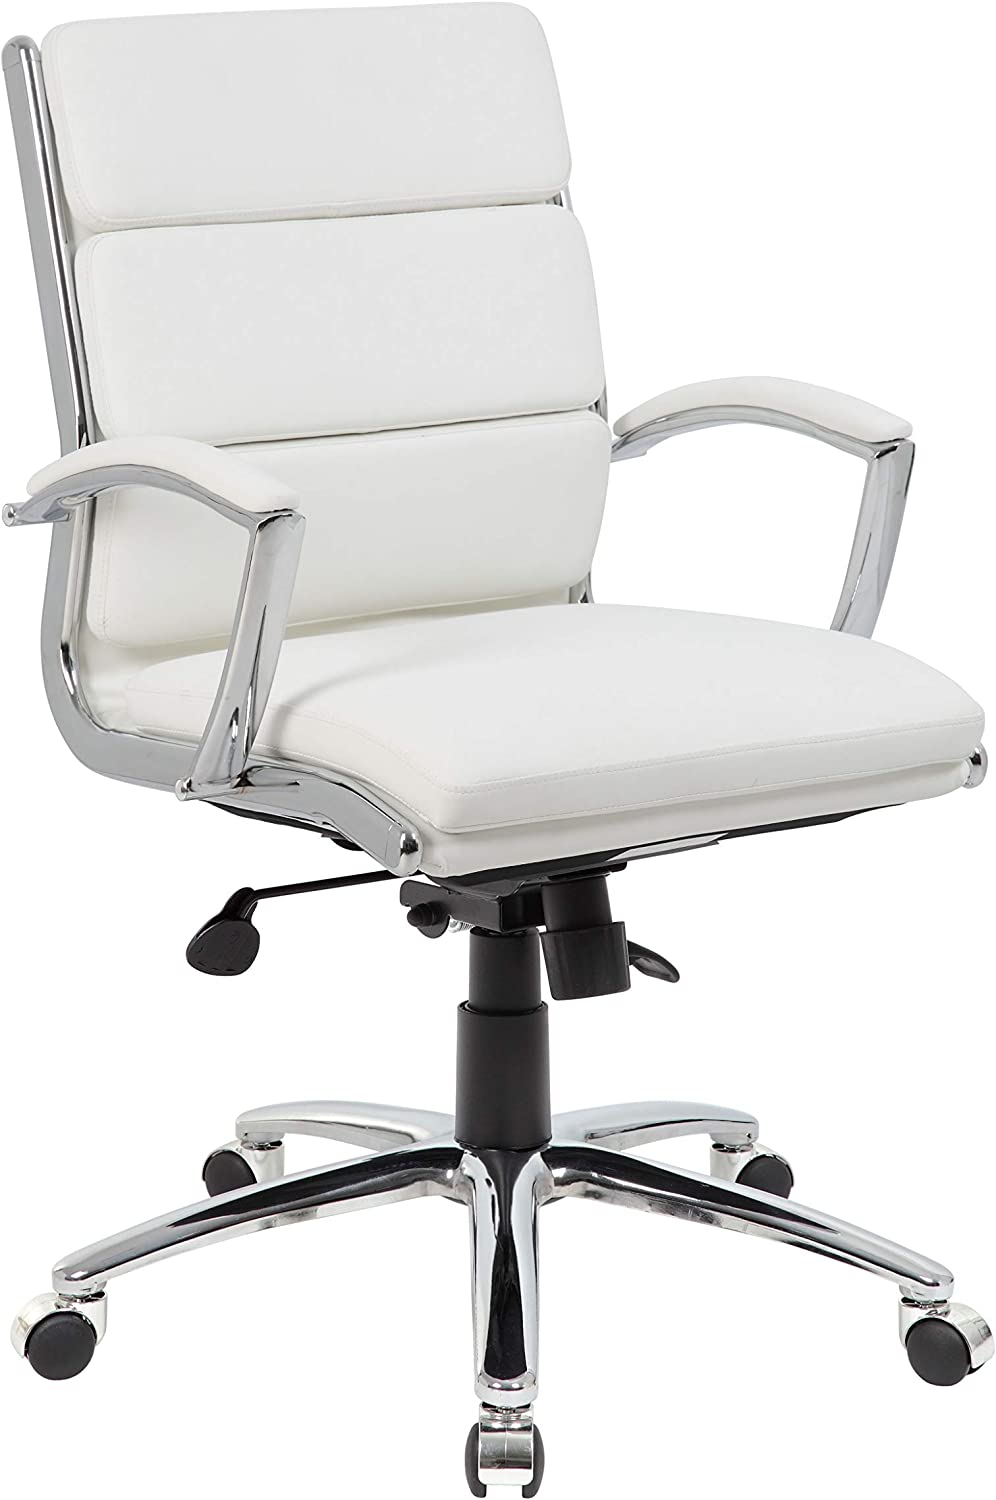 Boss Office Products (BOSXK) Executive Mid Back Chair, White